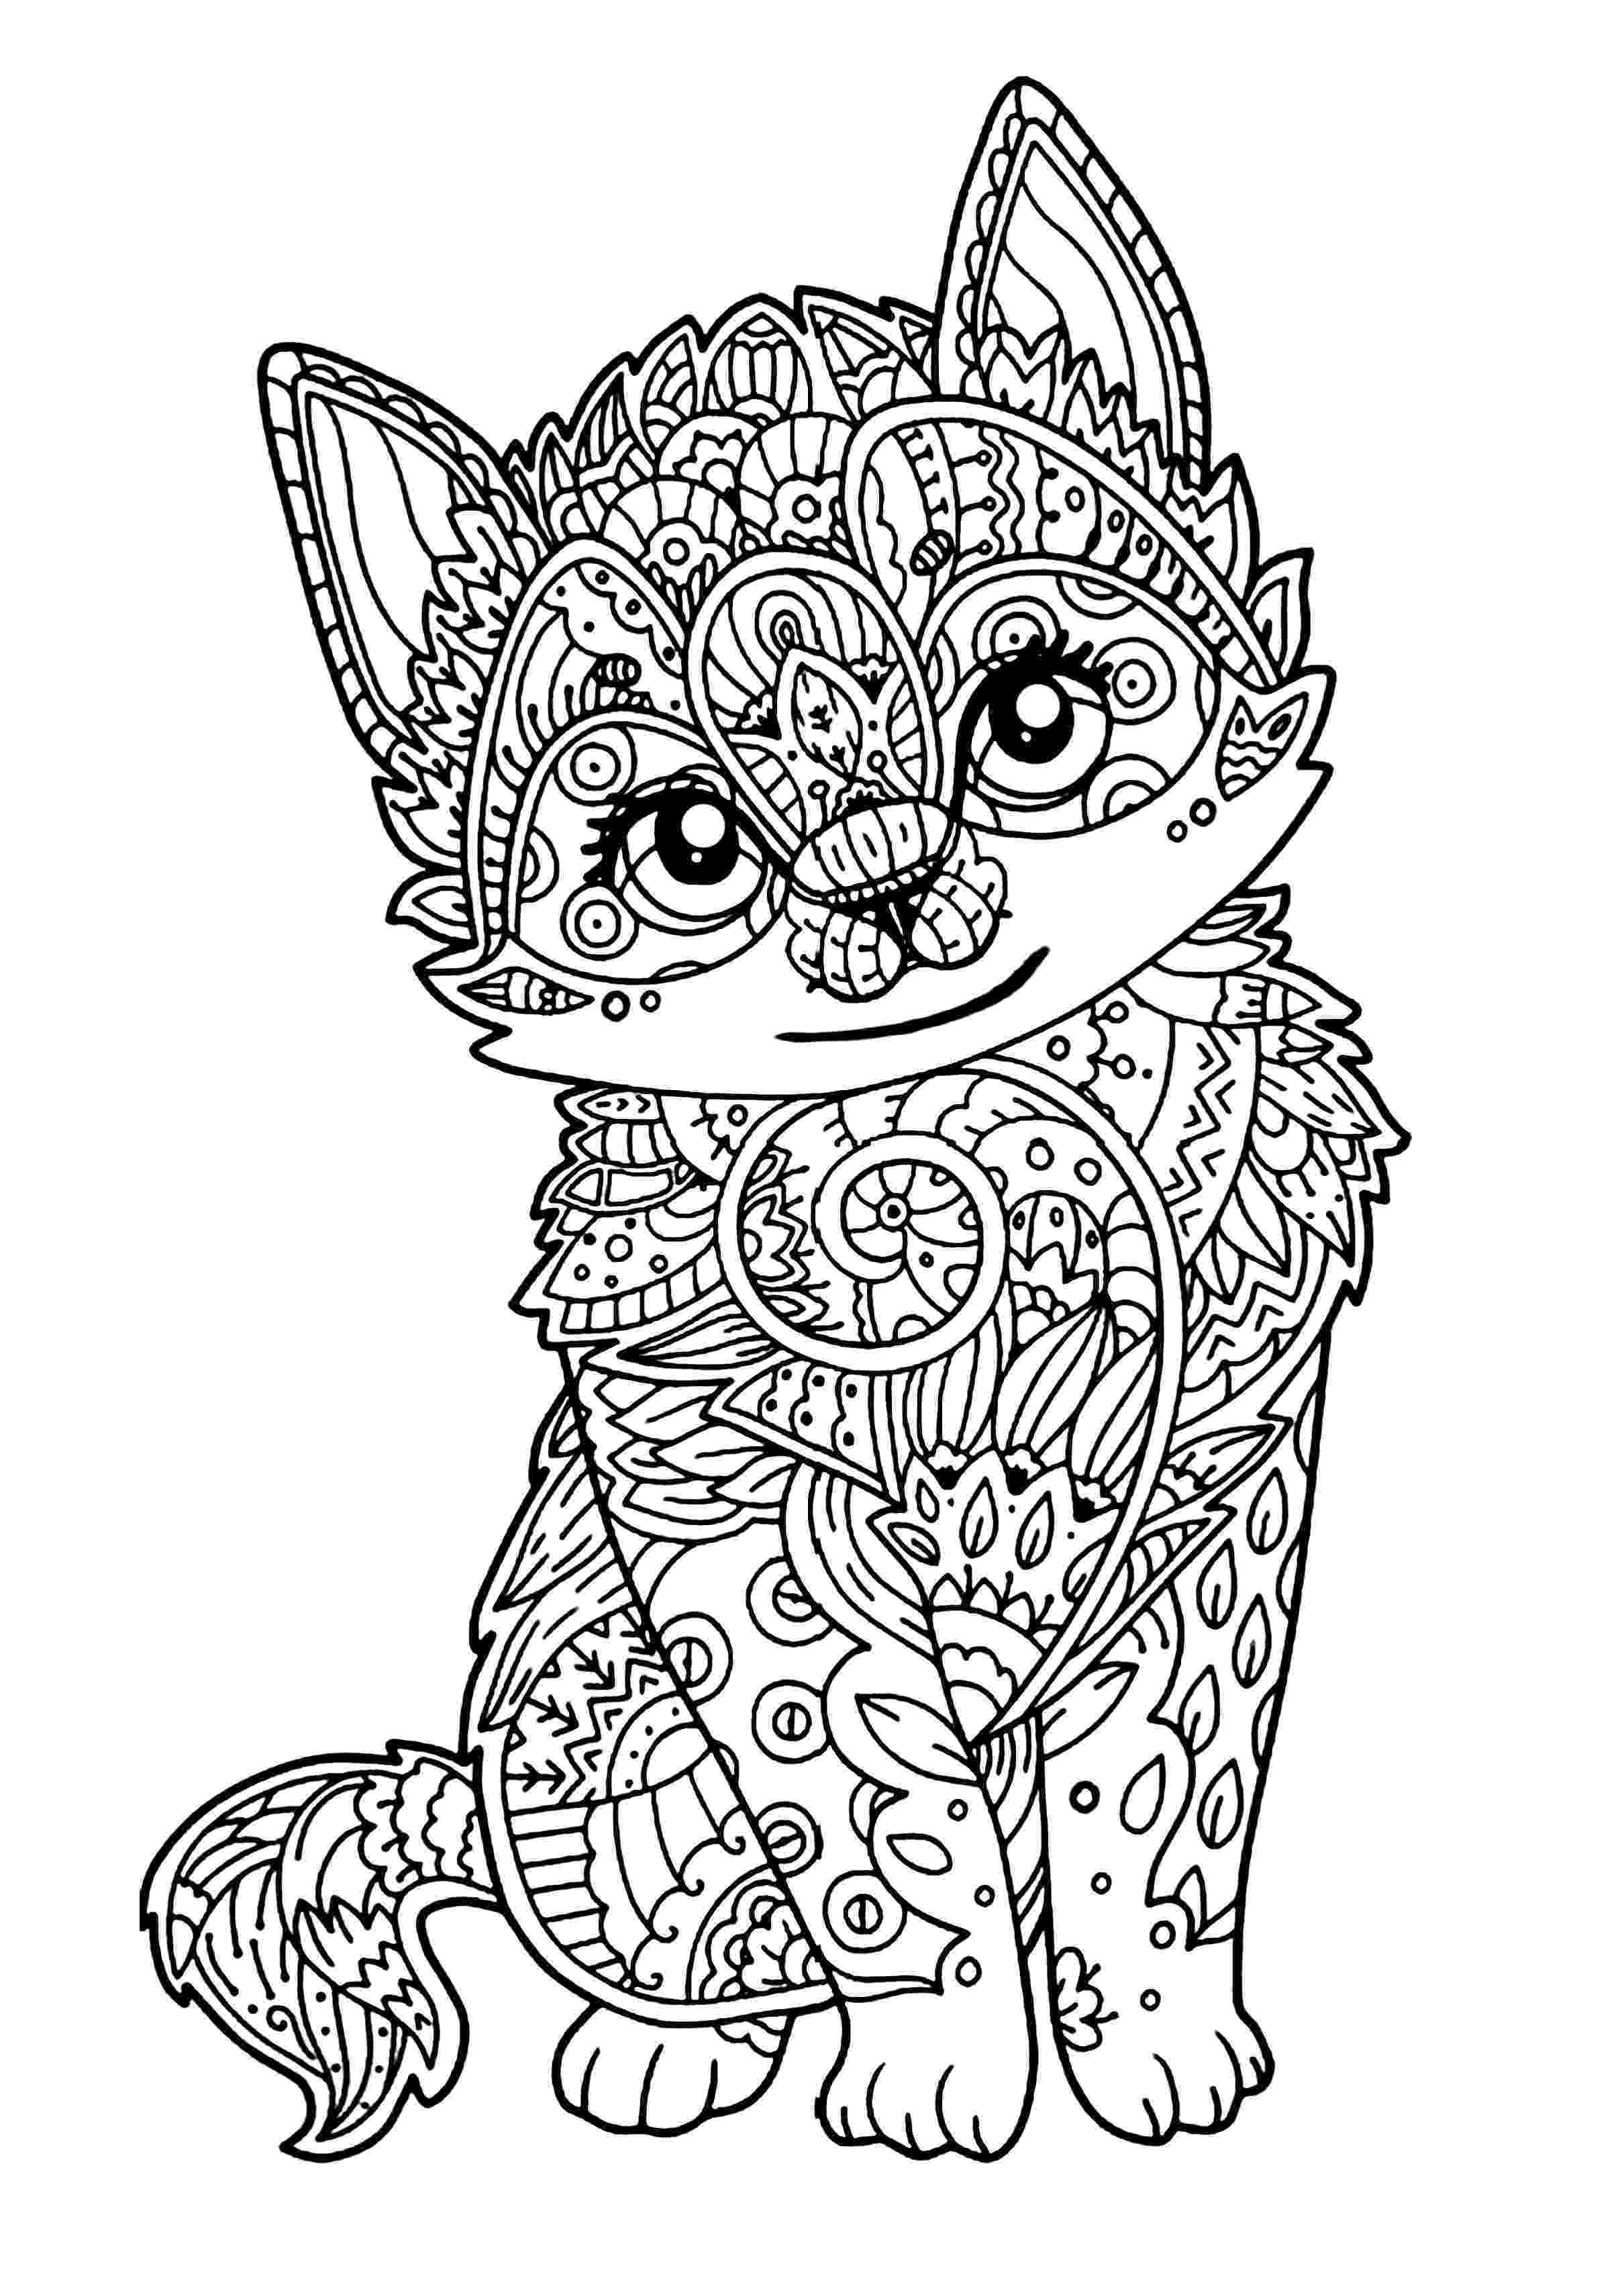 colouring pages for adults animals animal coloring pages pdf lion coloring pages mandala adults animals colouring for pages